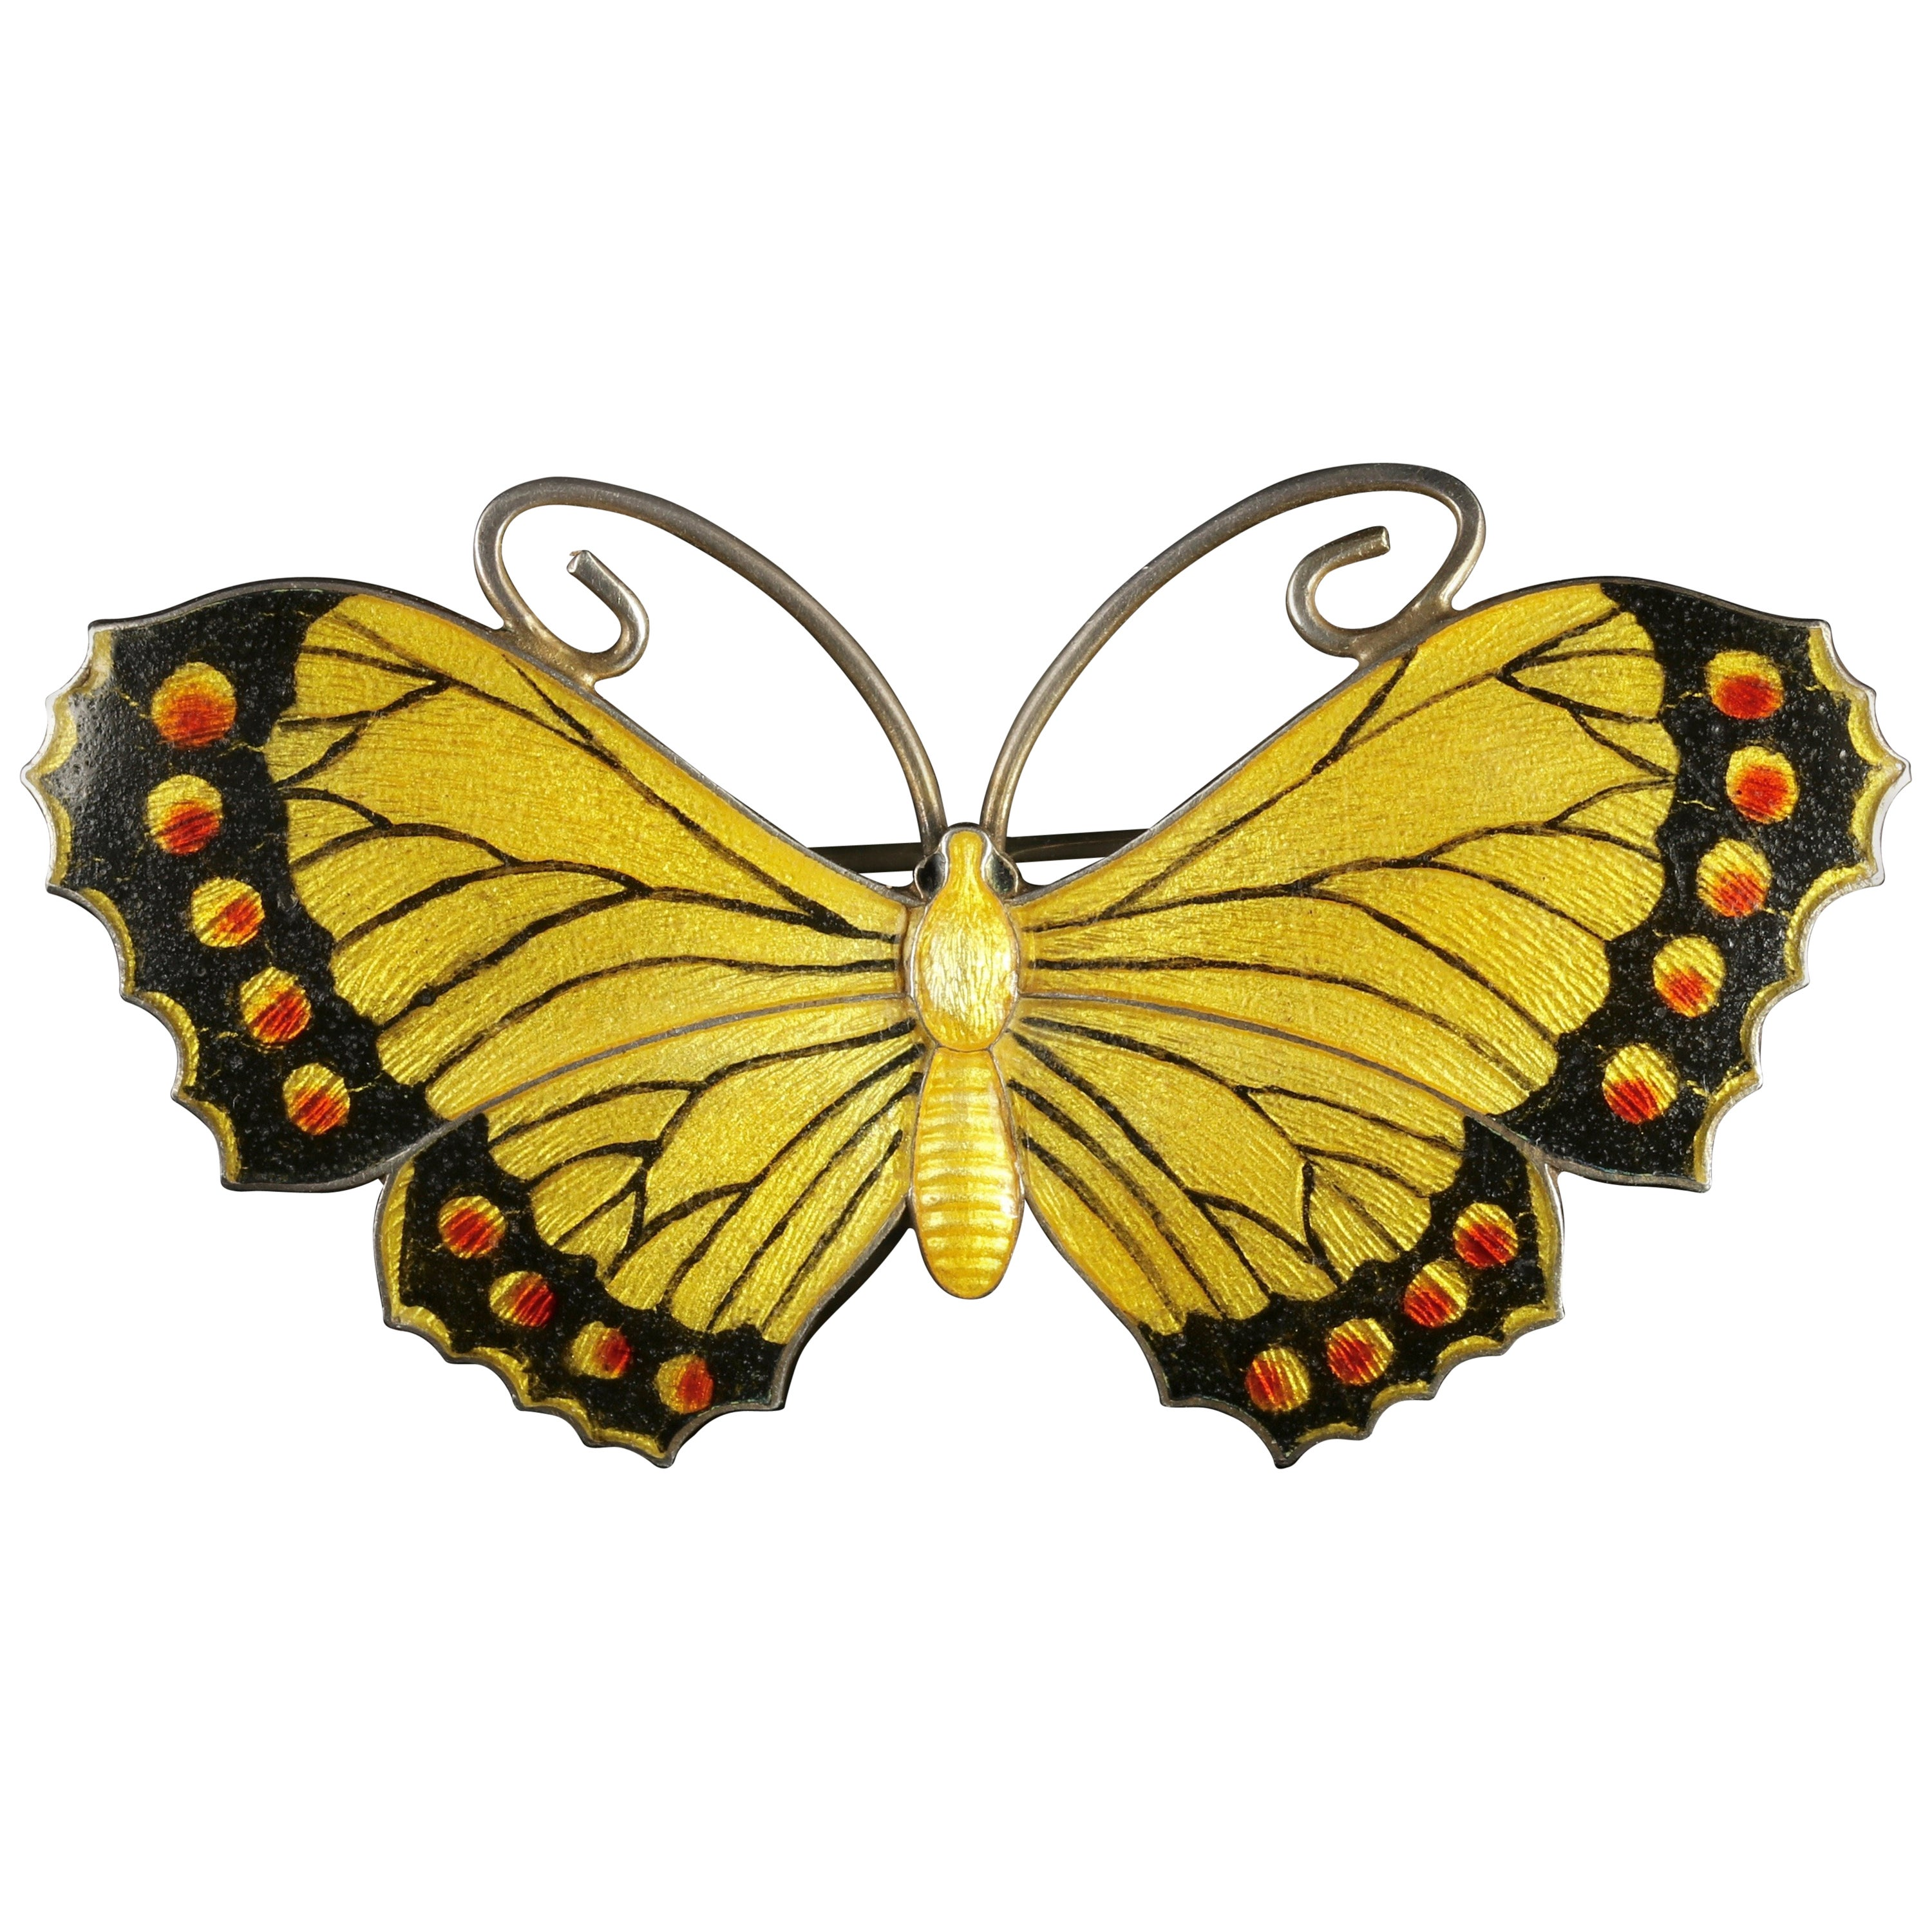 Antique Edwardian Silver Butterfly Brooch Makers JAS, 1916 at 1stdibs